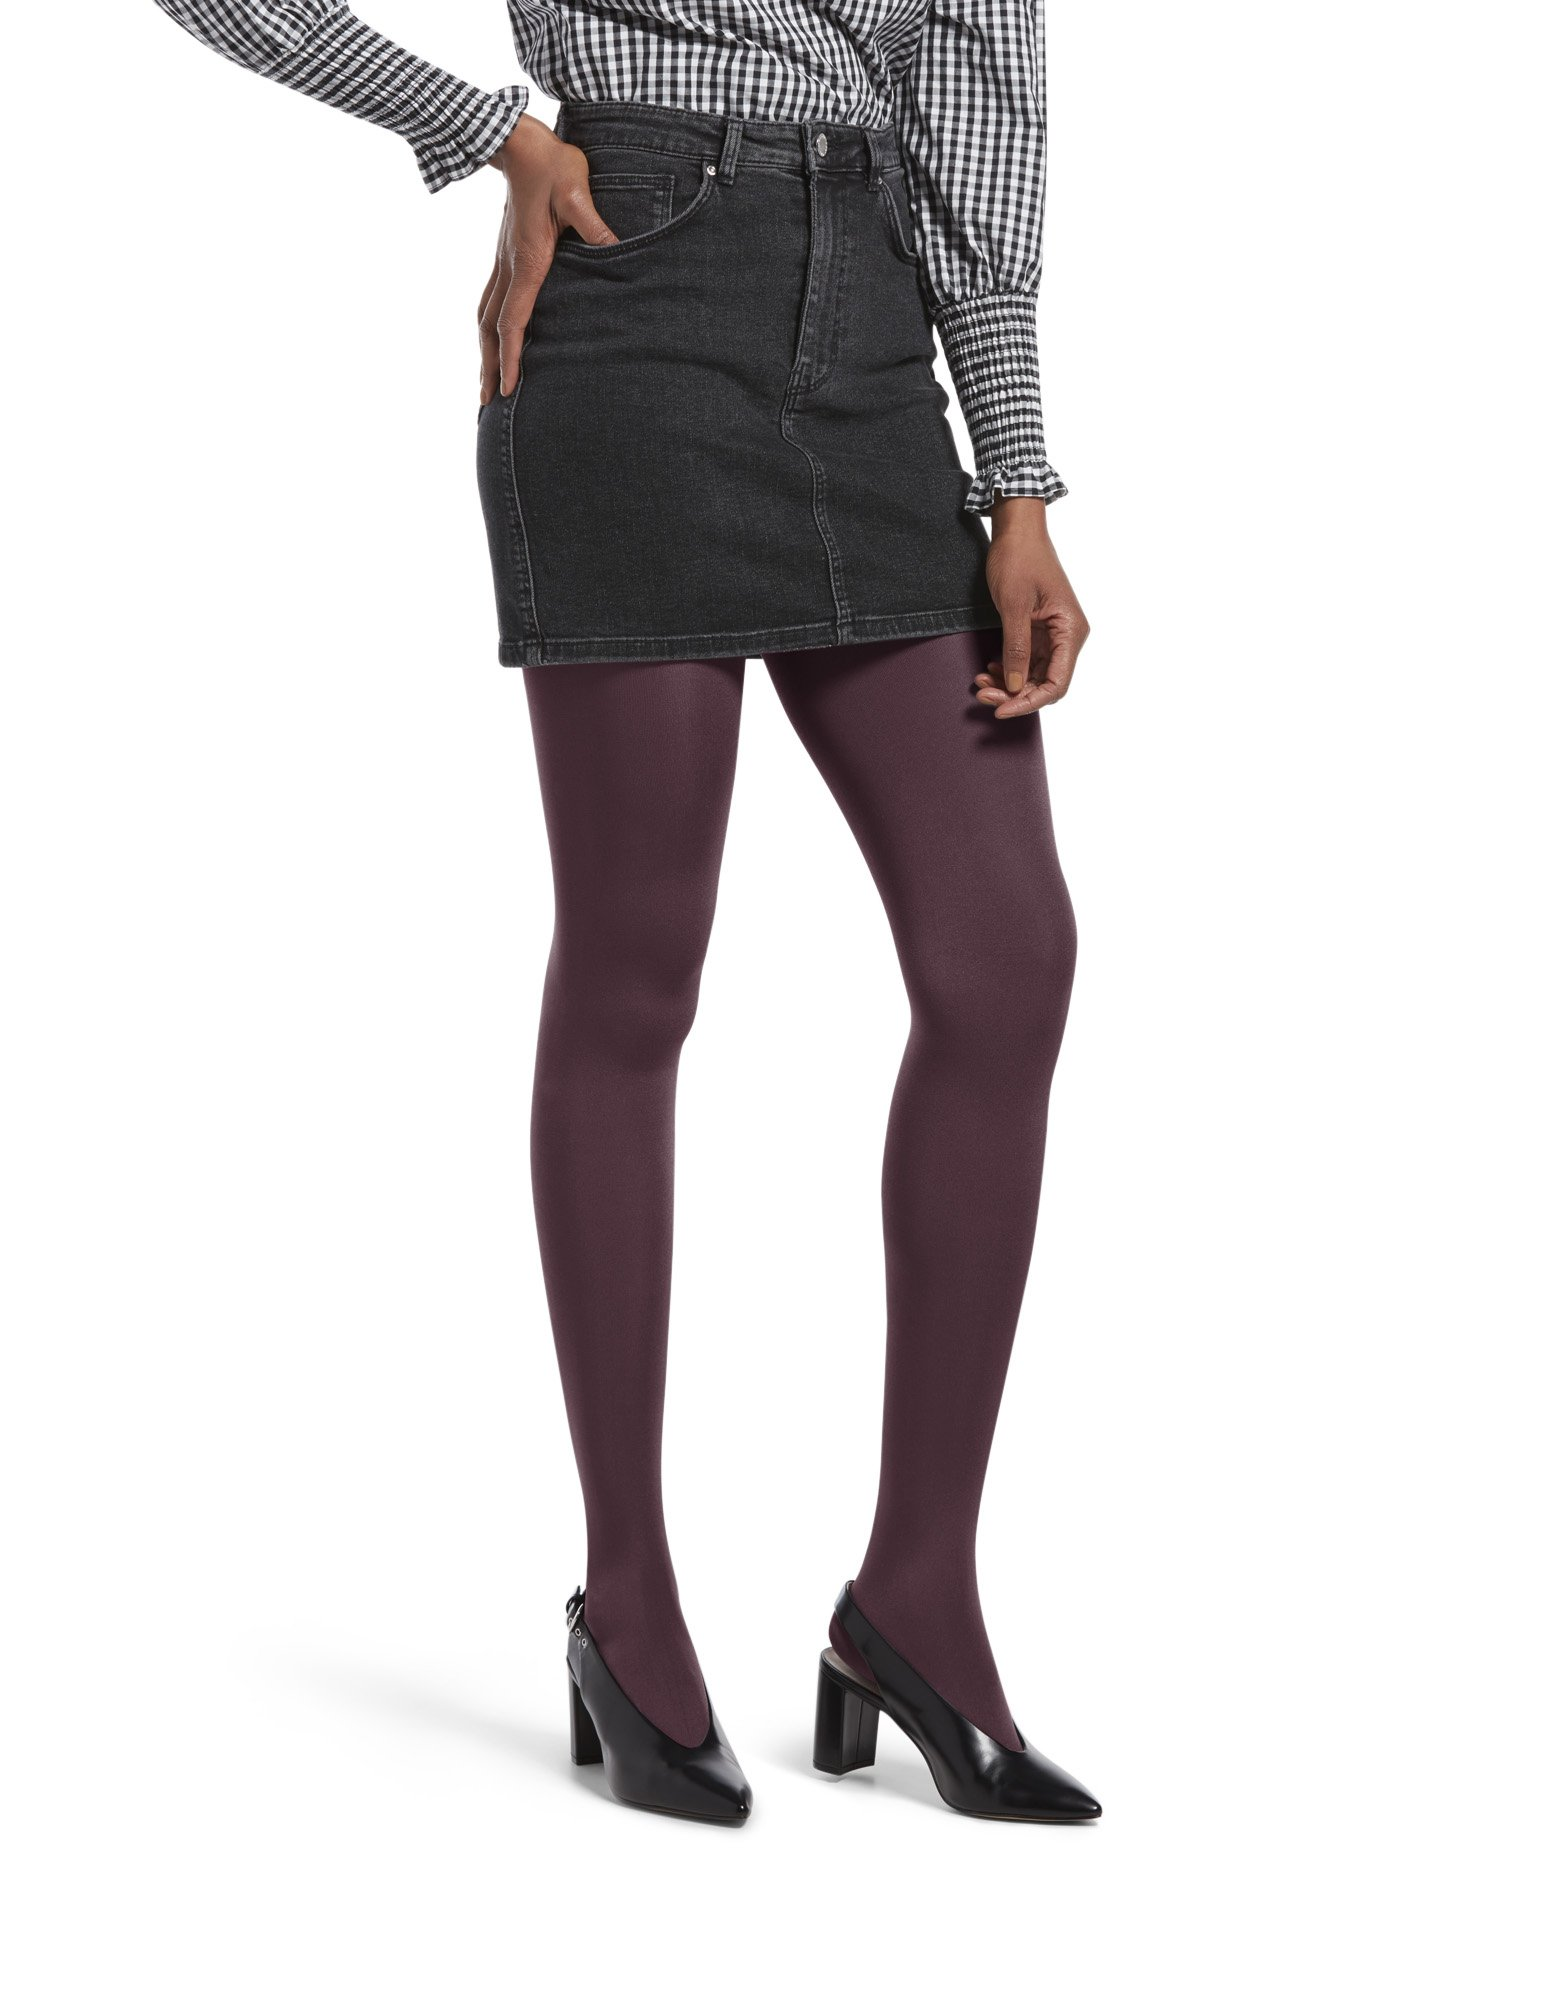 HUE Women's Luster Tights with Control Top, Currant, 2